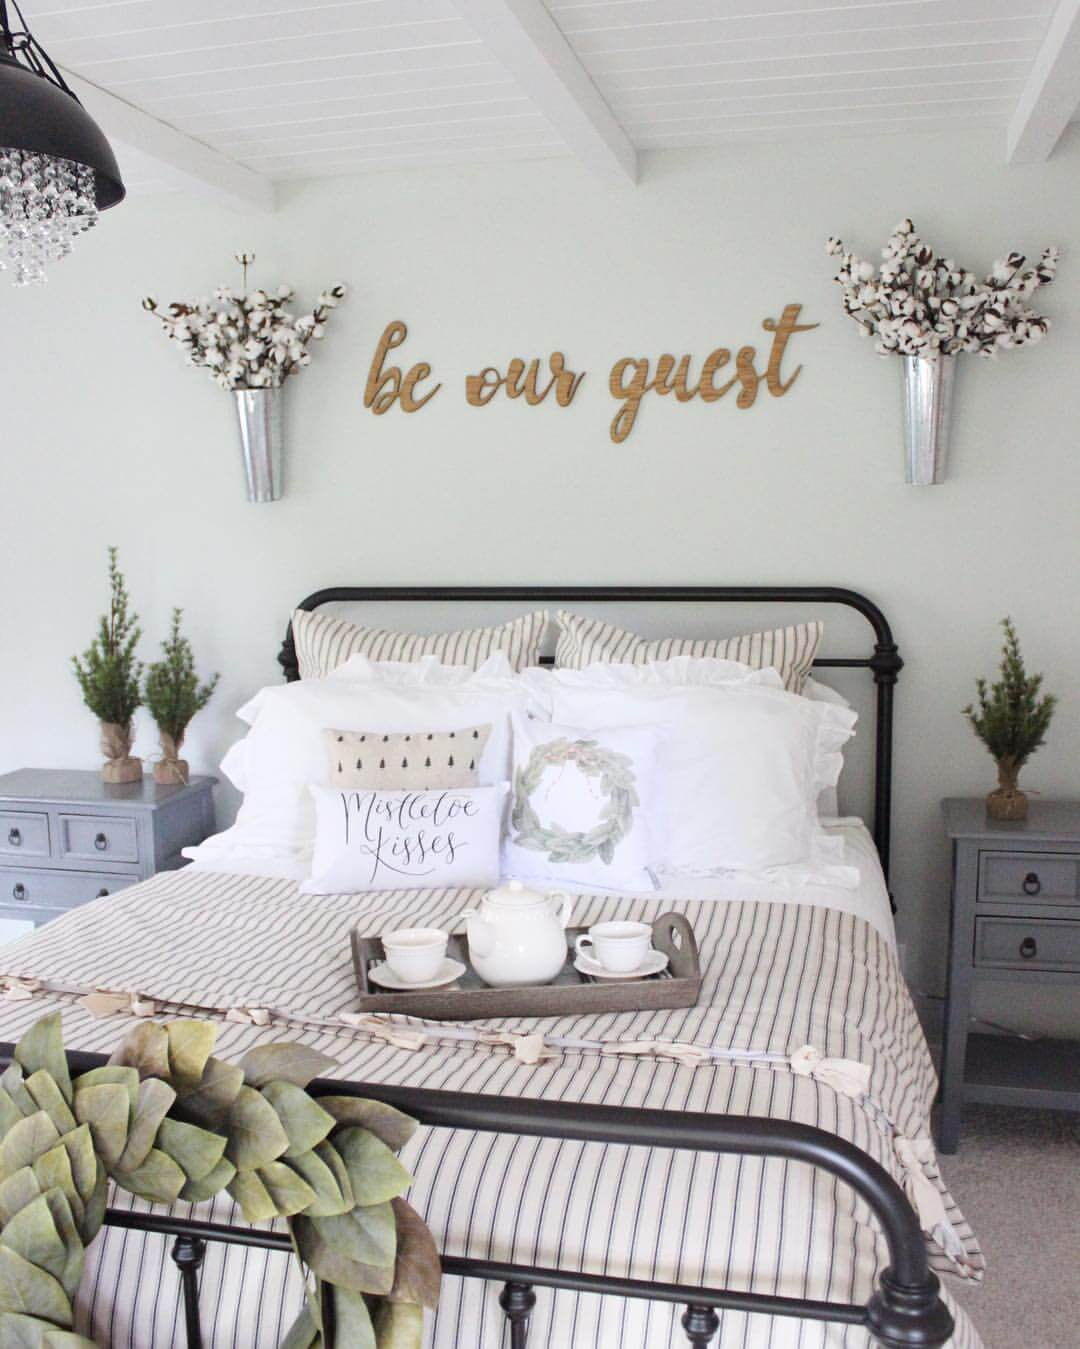 Bedroom Decor Design 39 Best Farmhouse Bedroom Design And Decor Ideas For 2019